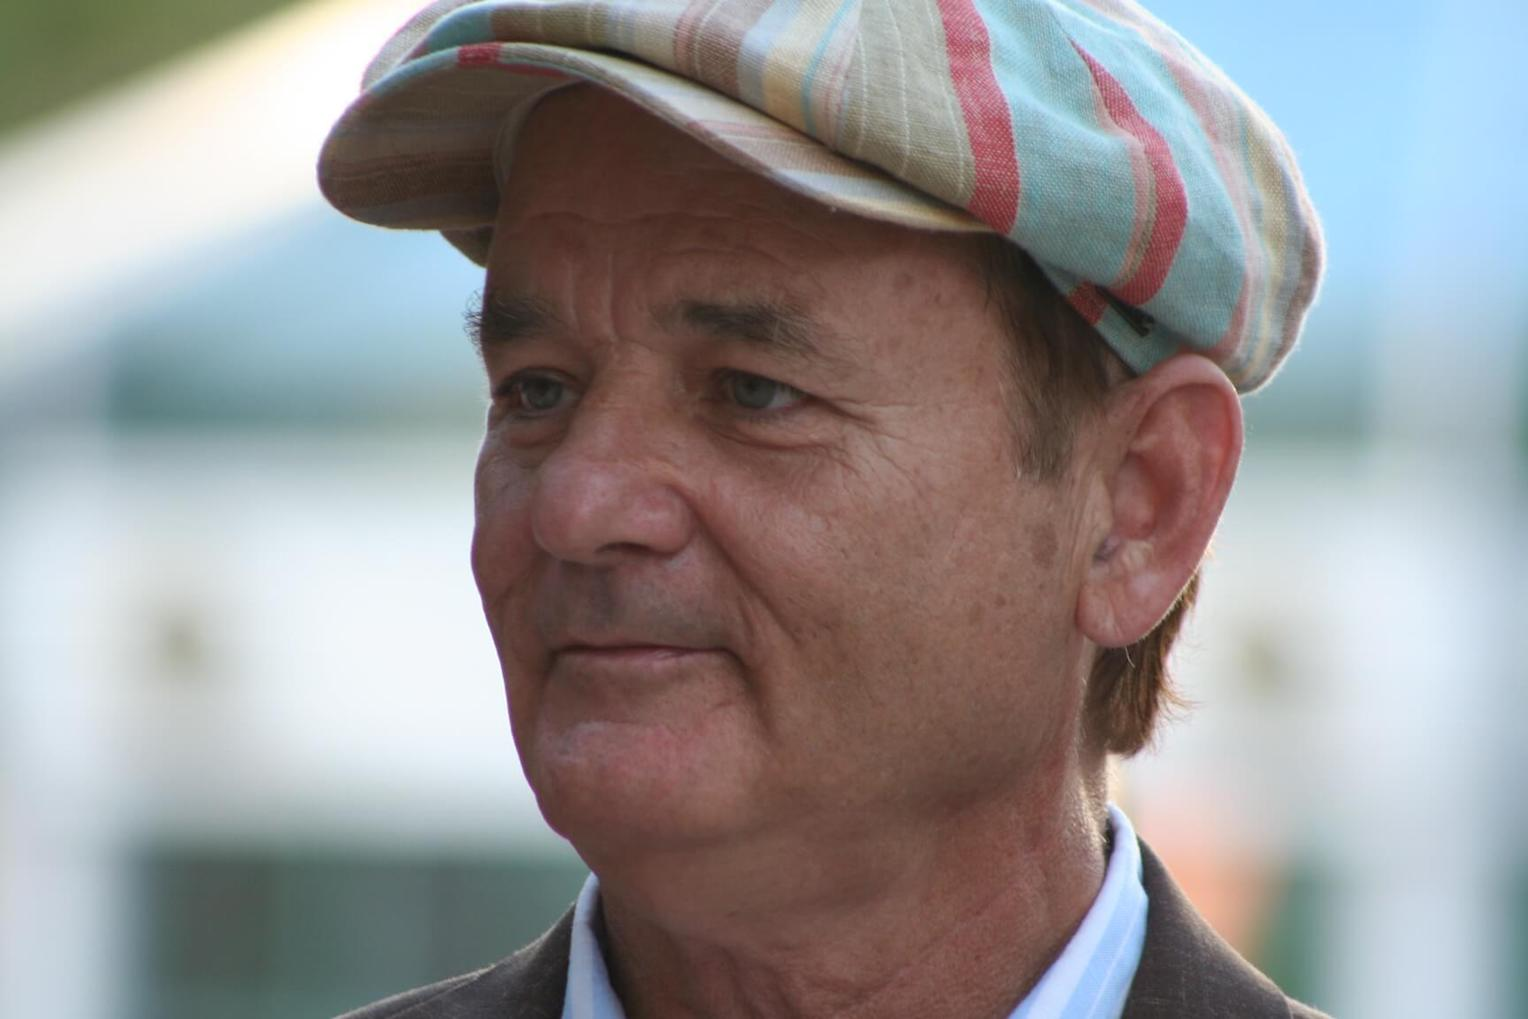 Actor Bill Murray Cuddles Rescue Dog on National Puppy Day